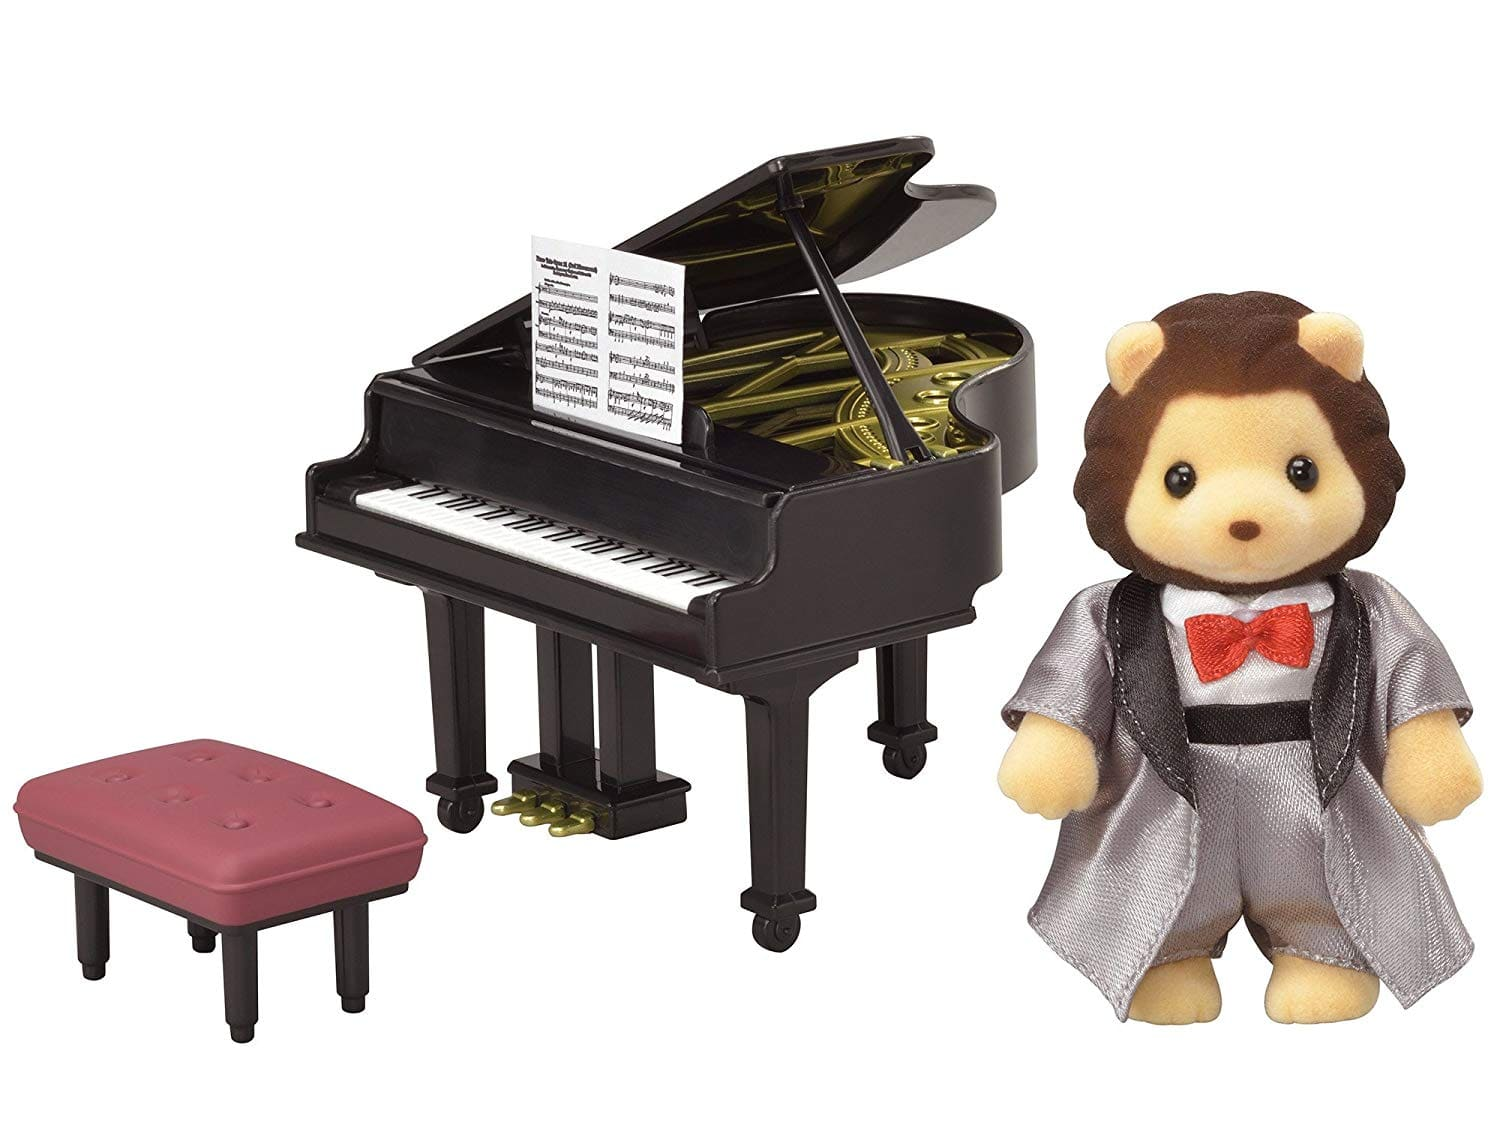 Calico Critters Town Series Grand Piano Concert Set